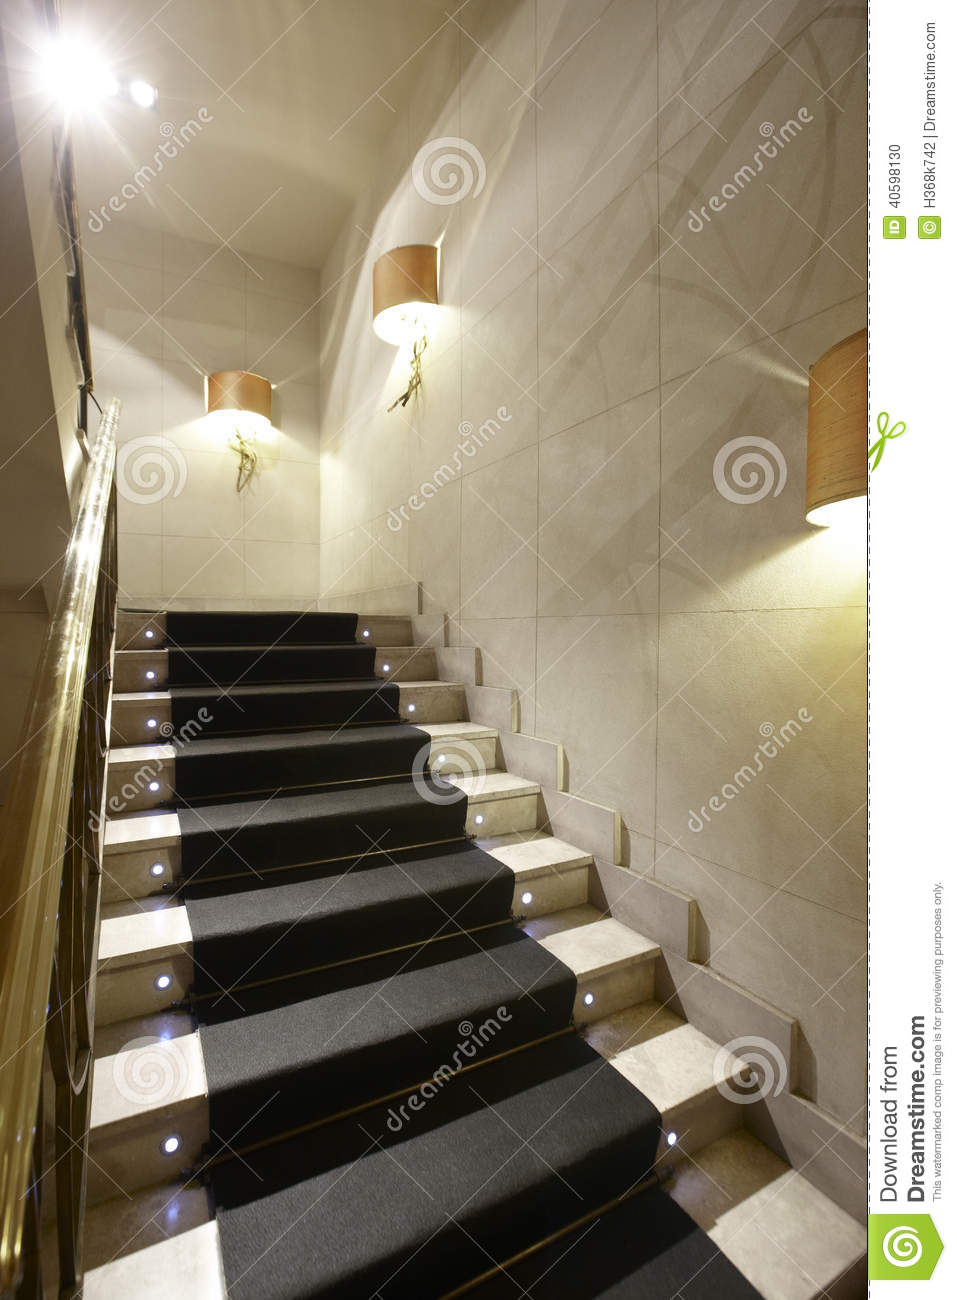 Luxury Home Interior With Marble Stairs Stock Photo